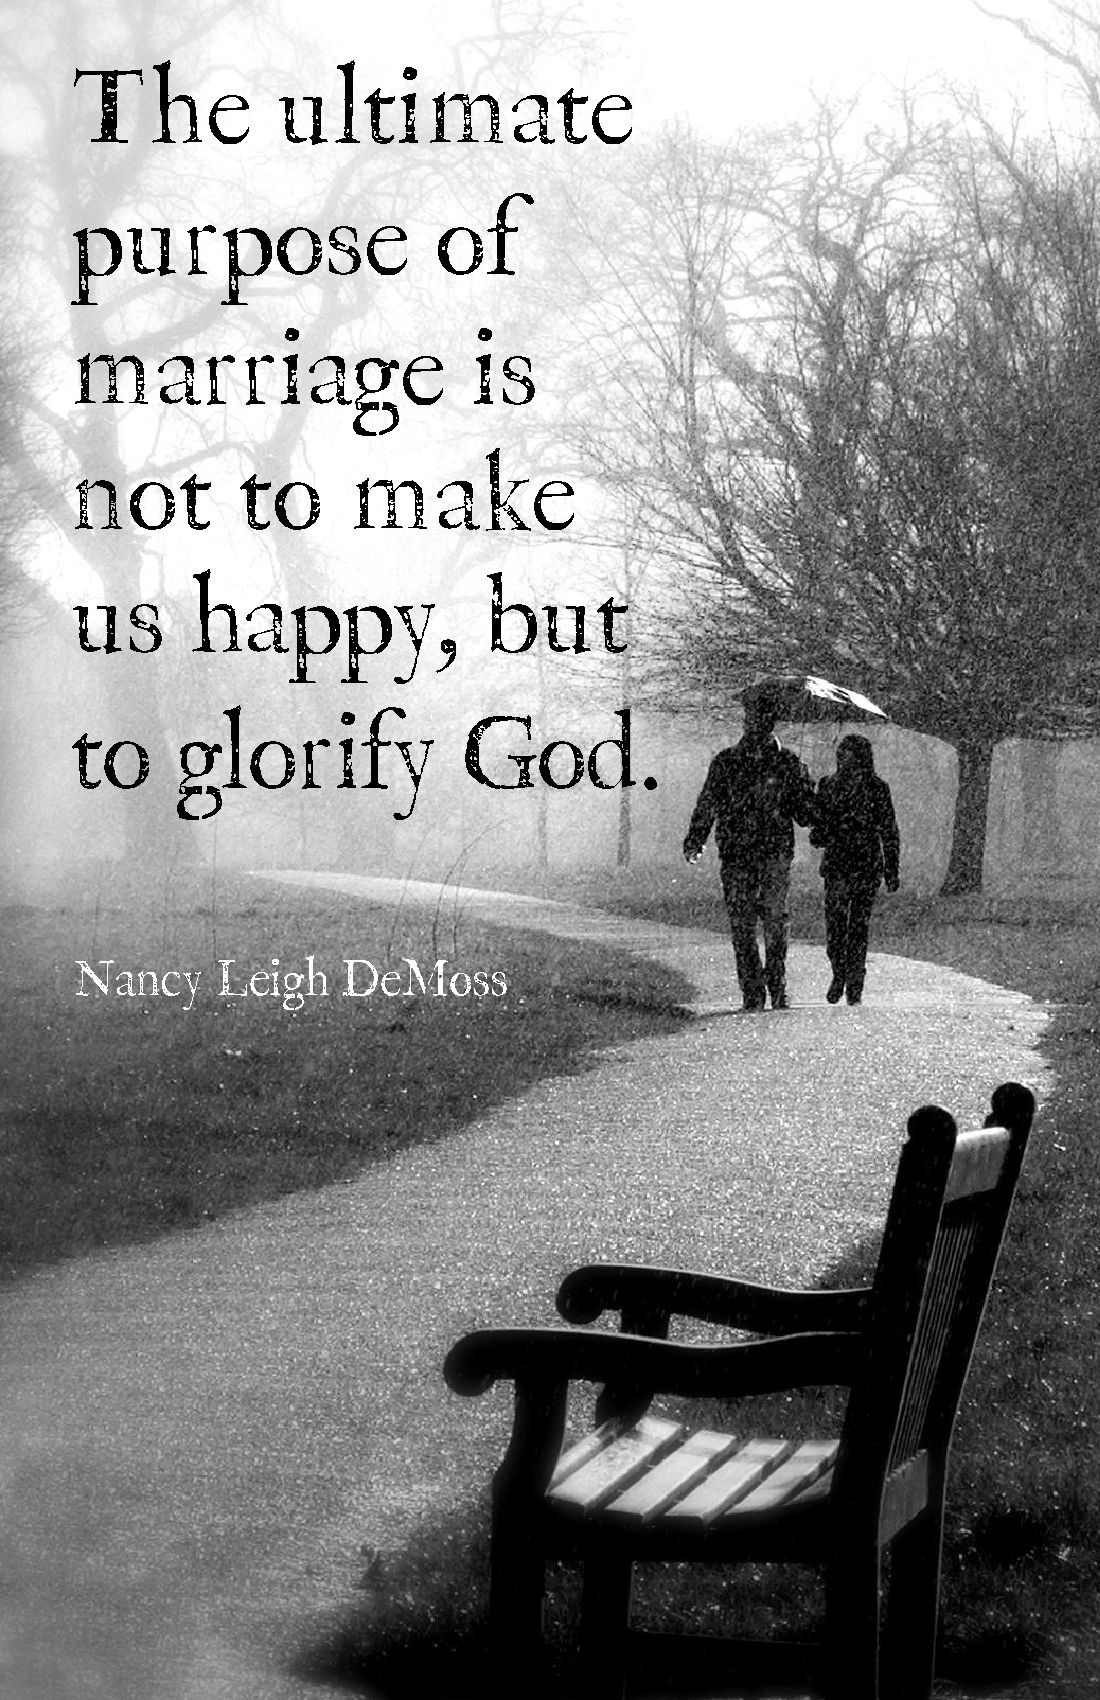 """""""The ultimate purpose of marriage is not to make us happy, but to glorify God.""""  Nancy Leigh DeMoss"""